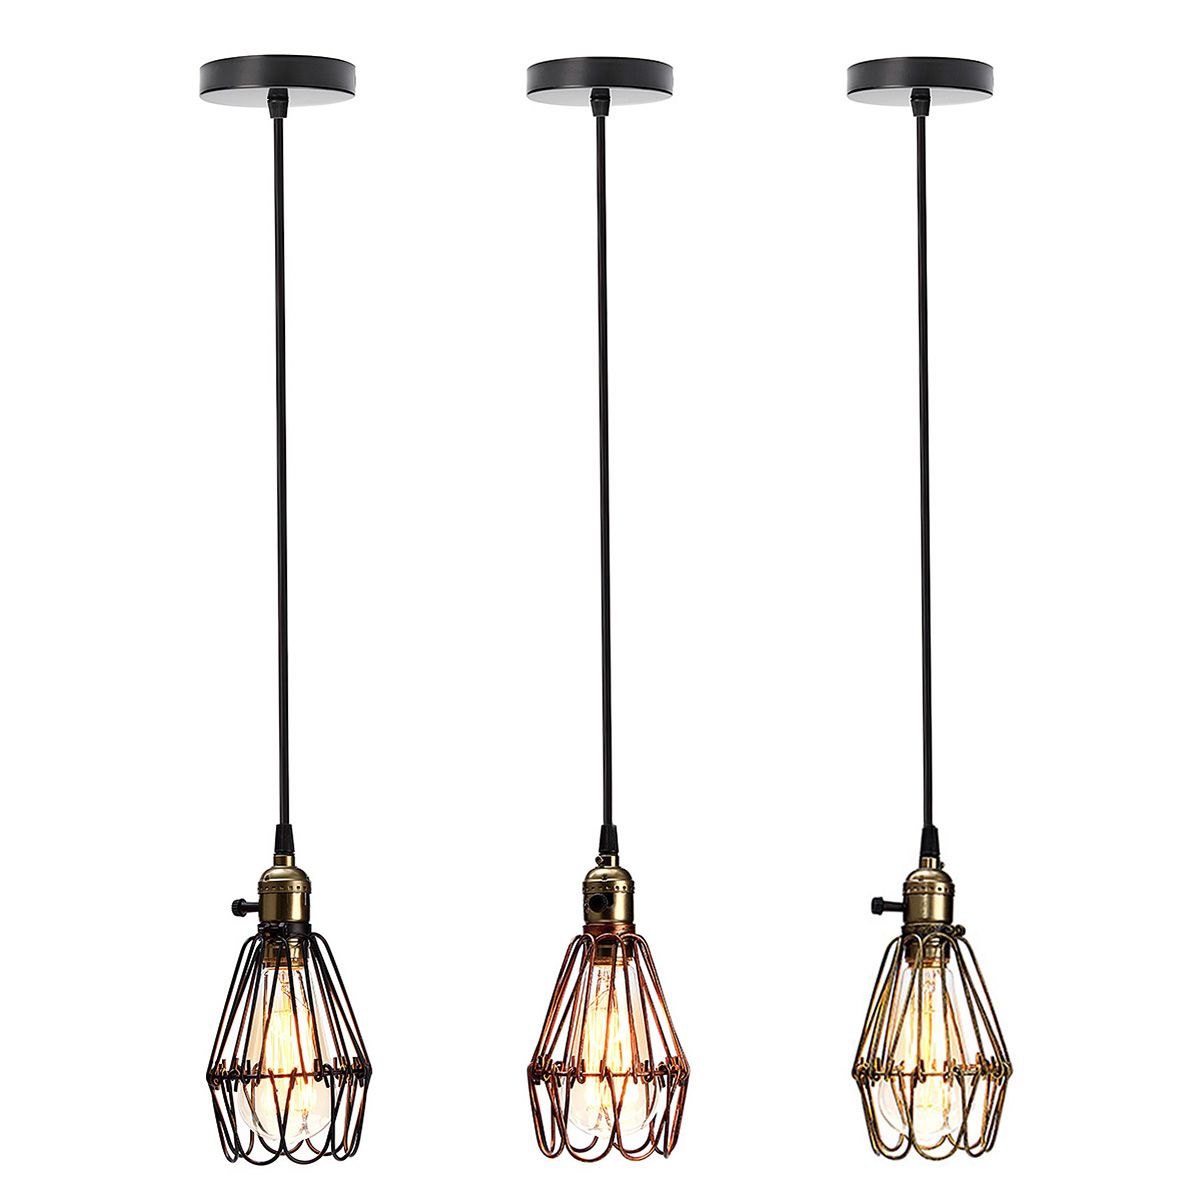 1.5M Vintage Industrial Retro Dimmable E27 Pendant Light Iron Hanging Lamp Lighting For Home Restaurant 110-220V loft industrial rust ceramics hanging lamp vintage pendant lamp cafe bar edison retro iron lighting